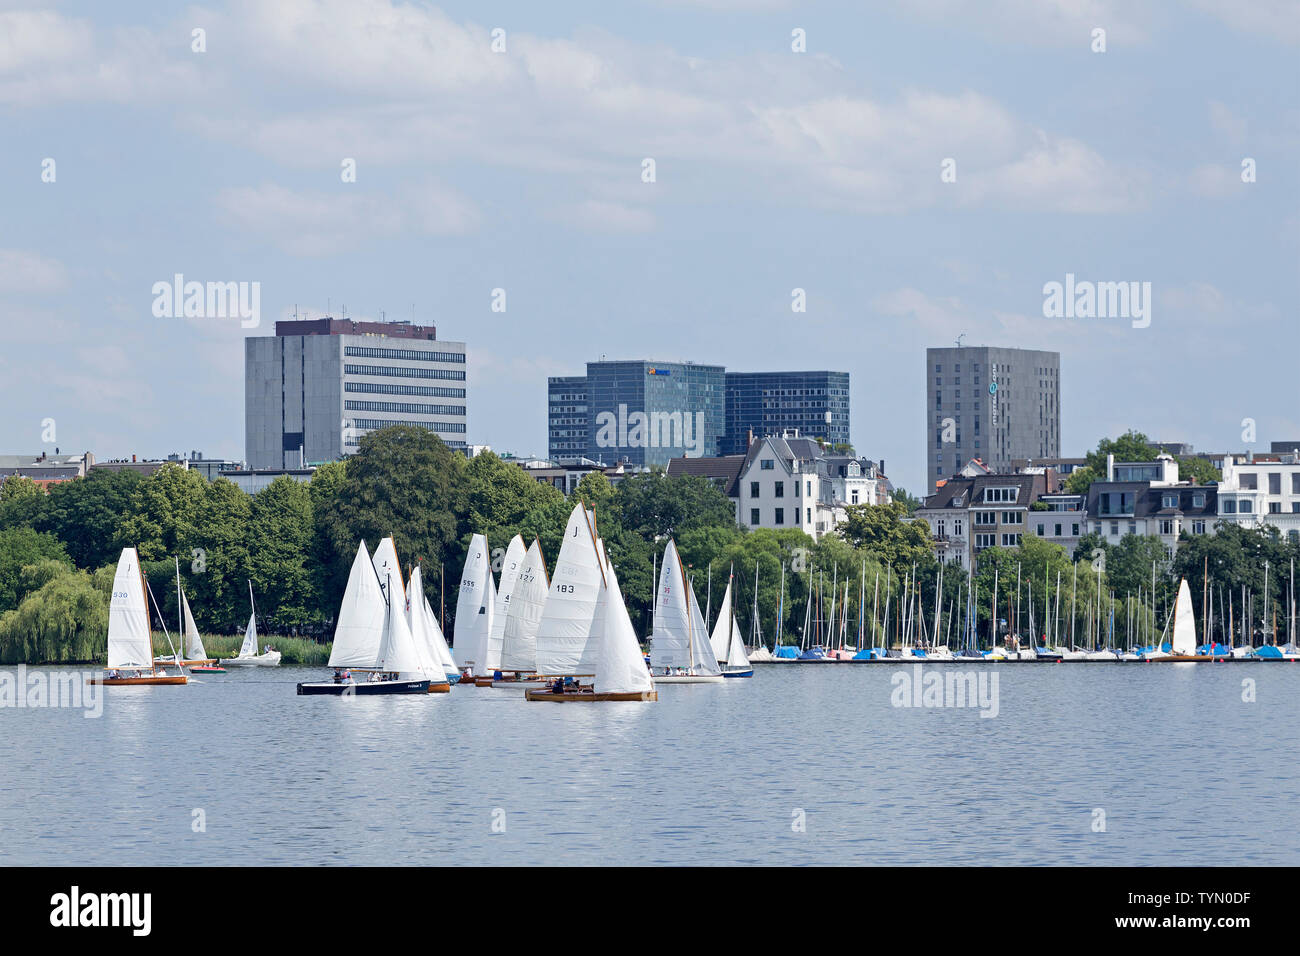 sailing boats on Outer Alster, Hamburg, Germany - Stock Image